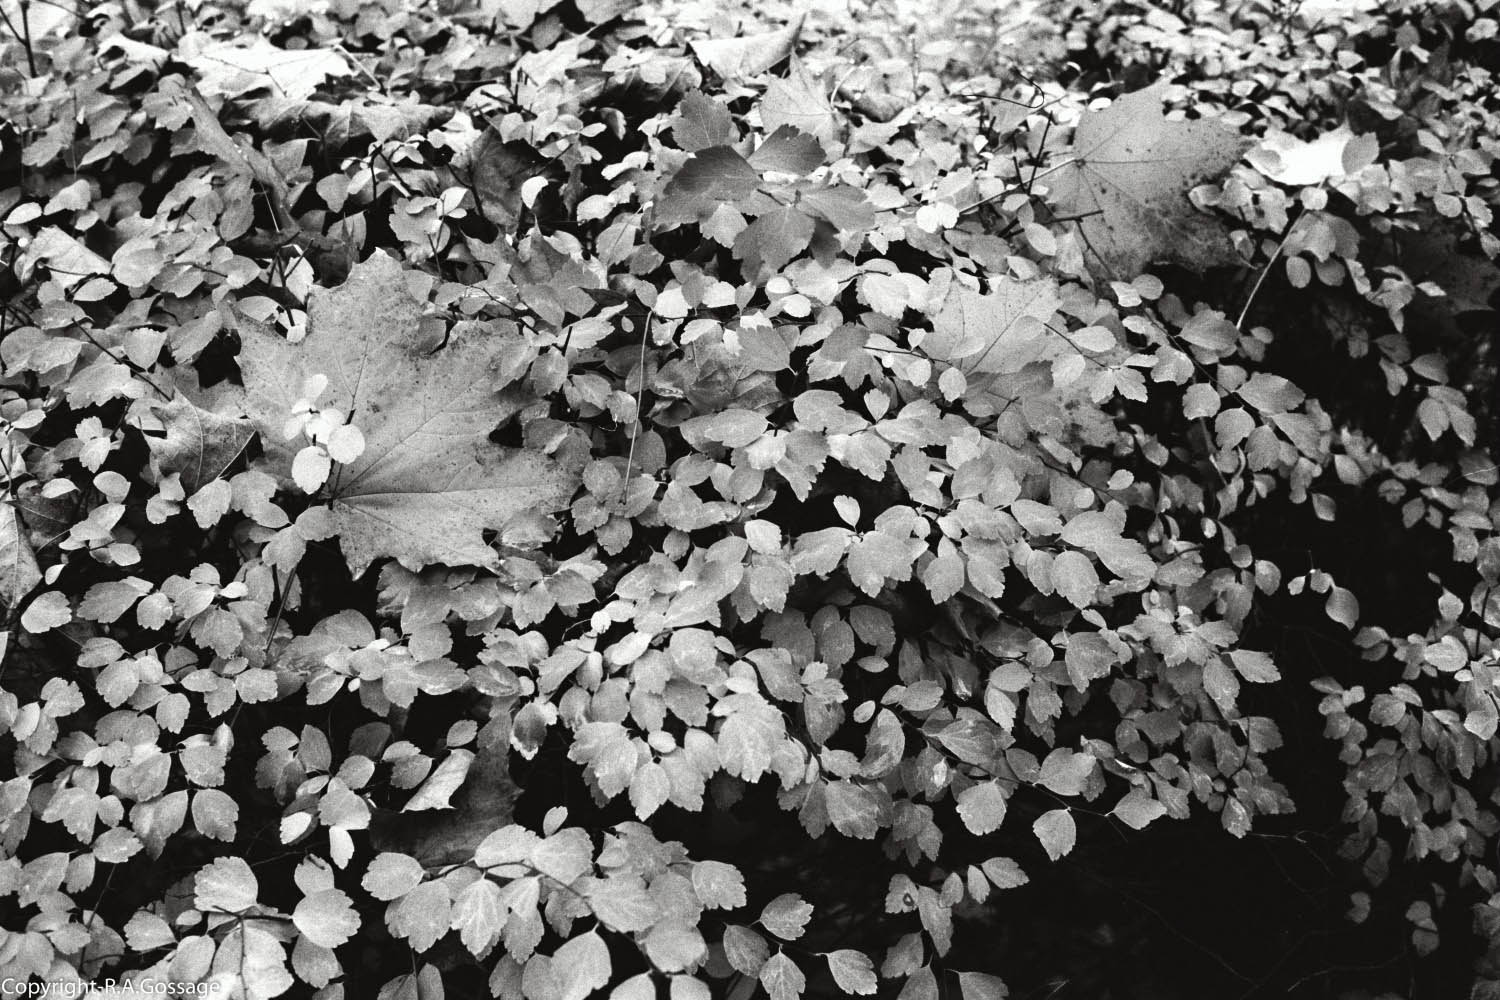 Leaves_B&W_1 (1 of 1).jpg